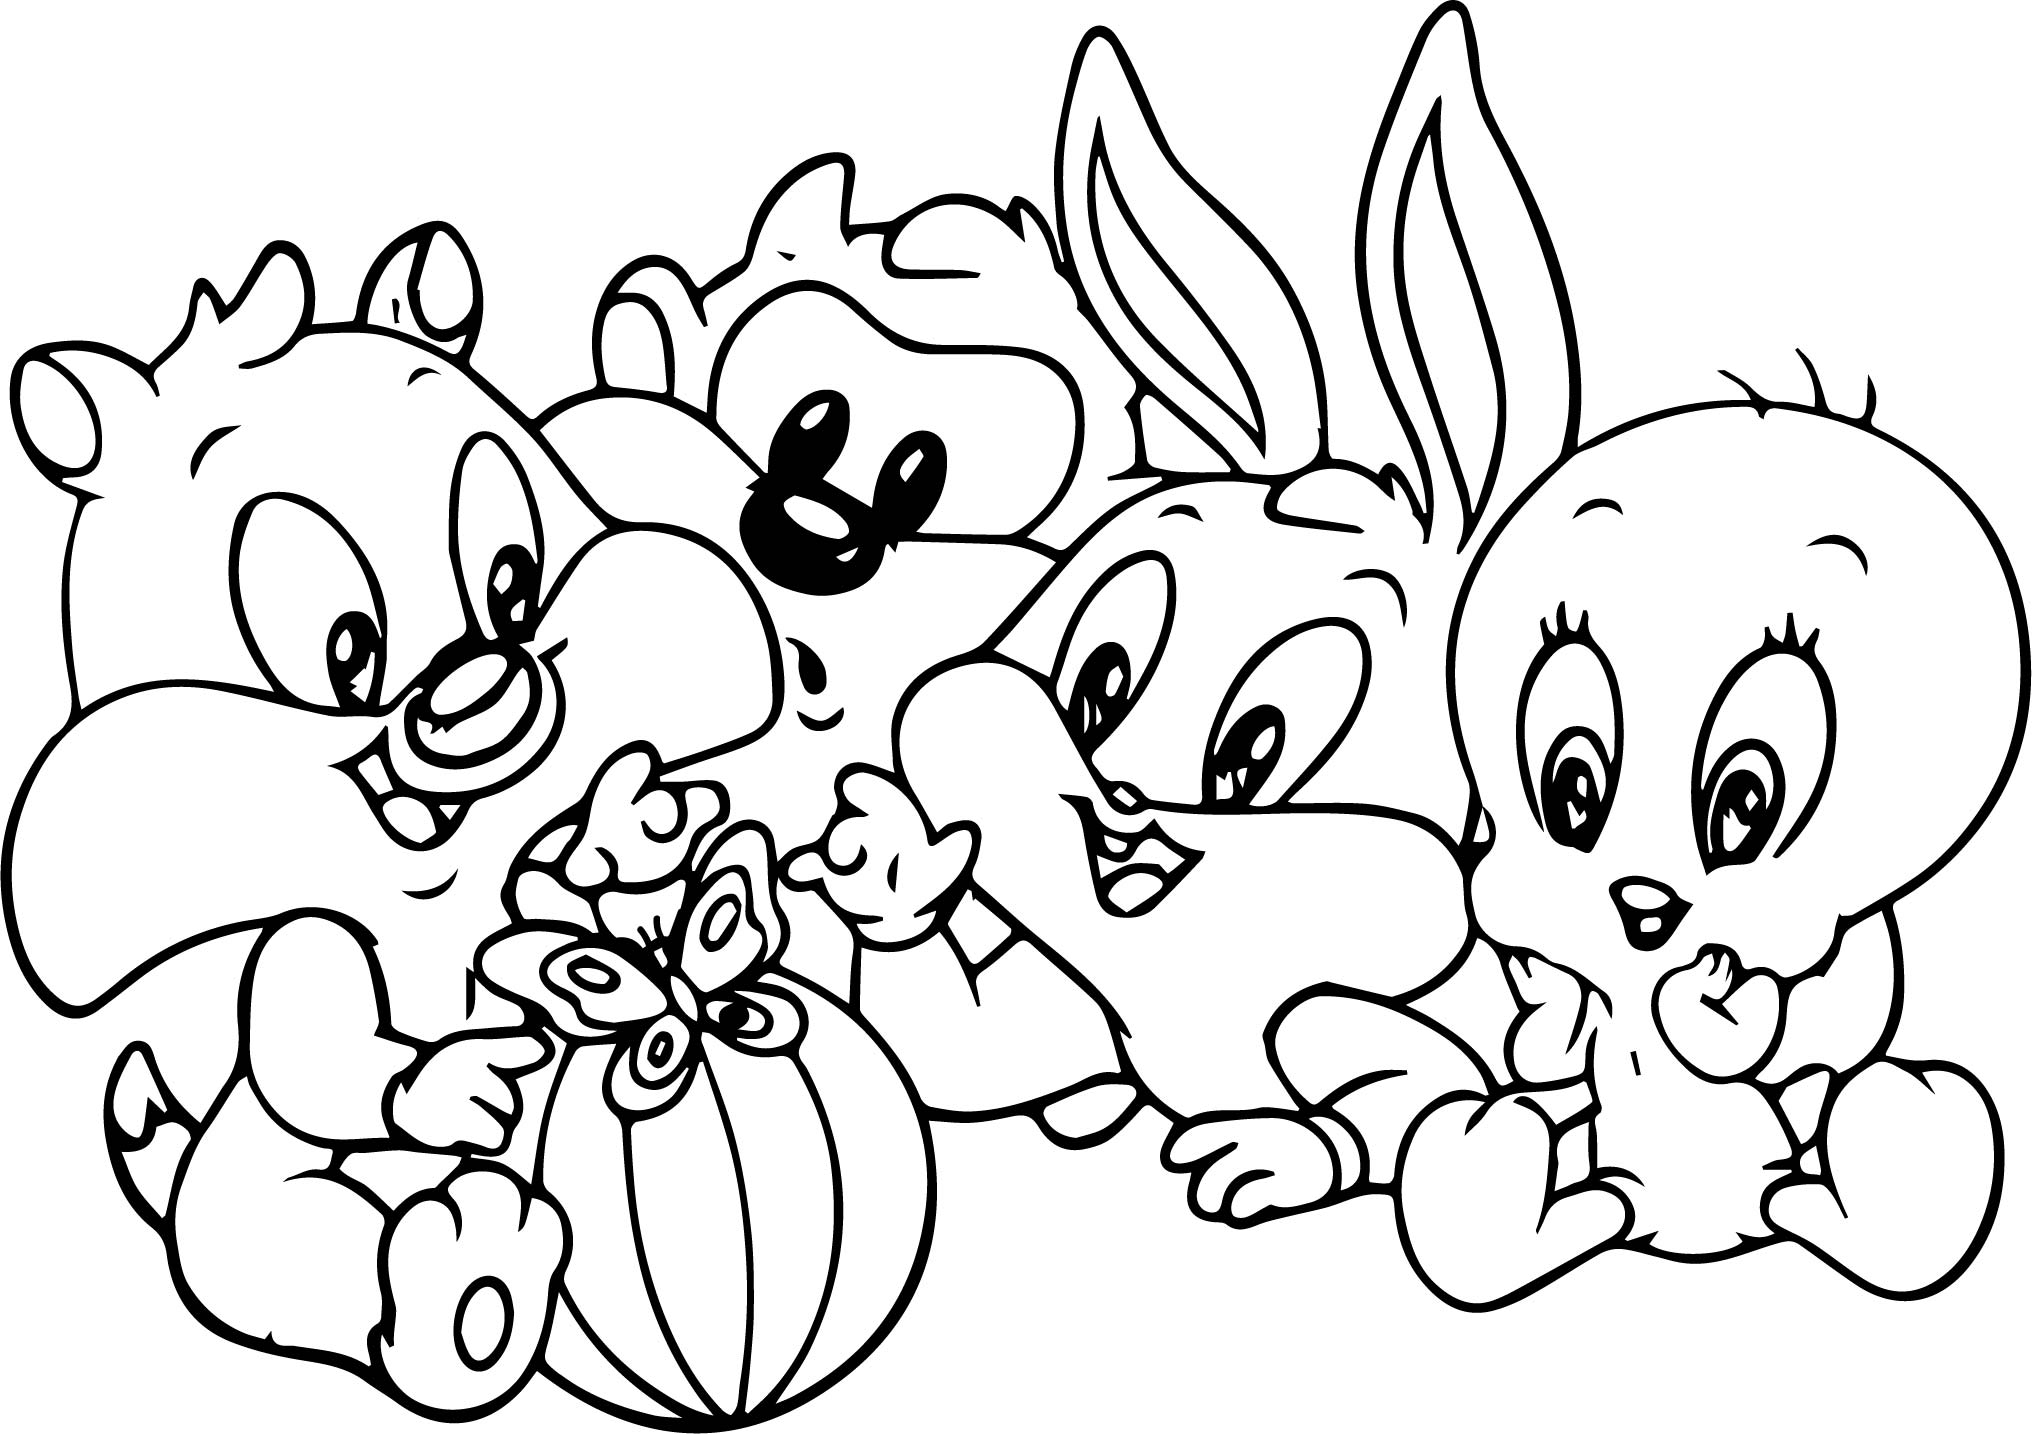 baby bugs bunny looney tunes cartoon coloring page wecoloringpage